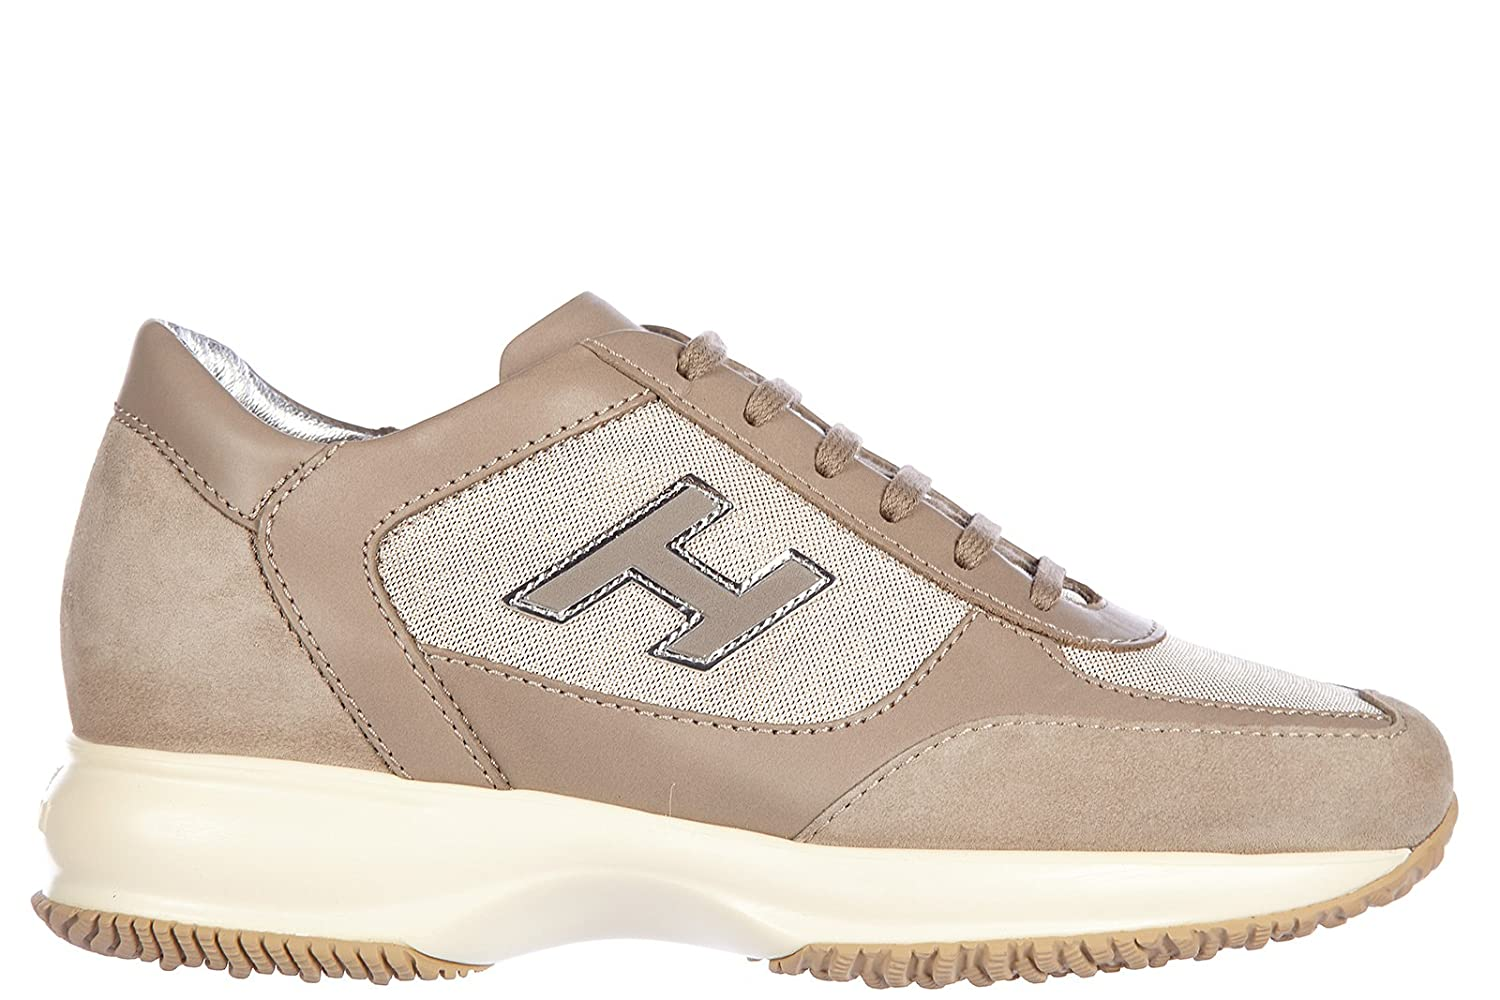 | Hogan Women's Shoes Leather Trainers Sneakers